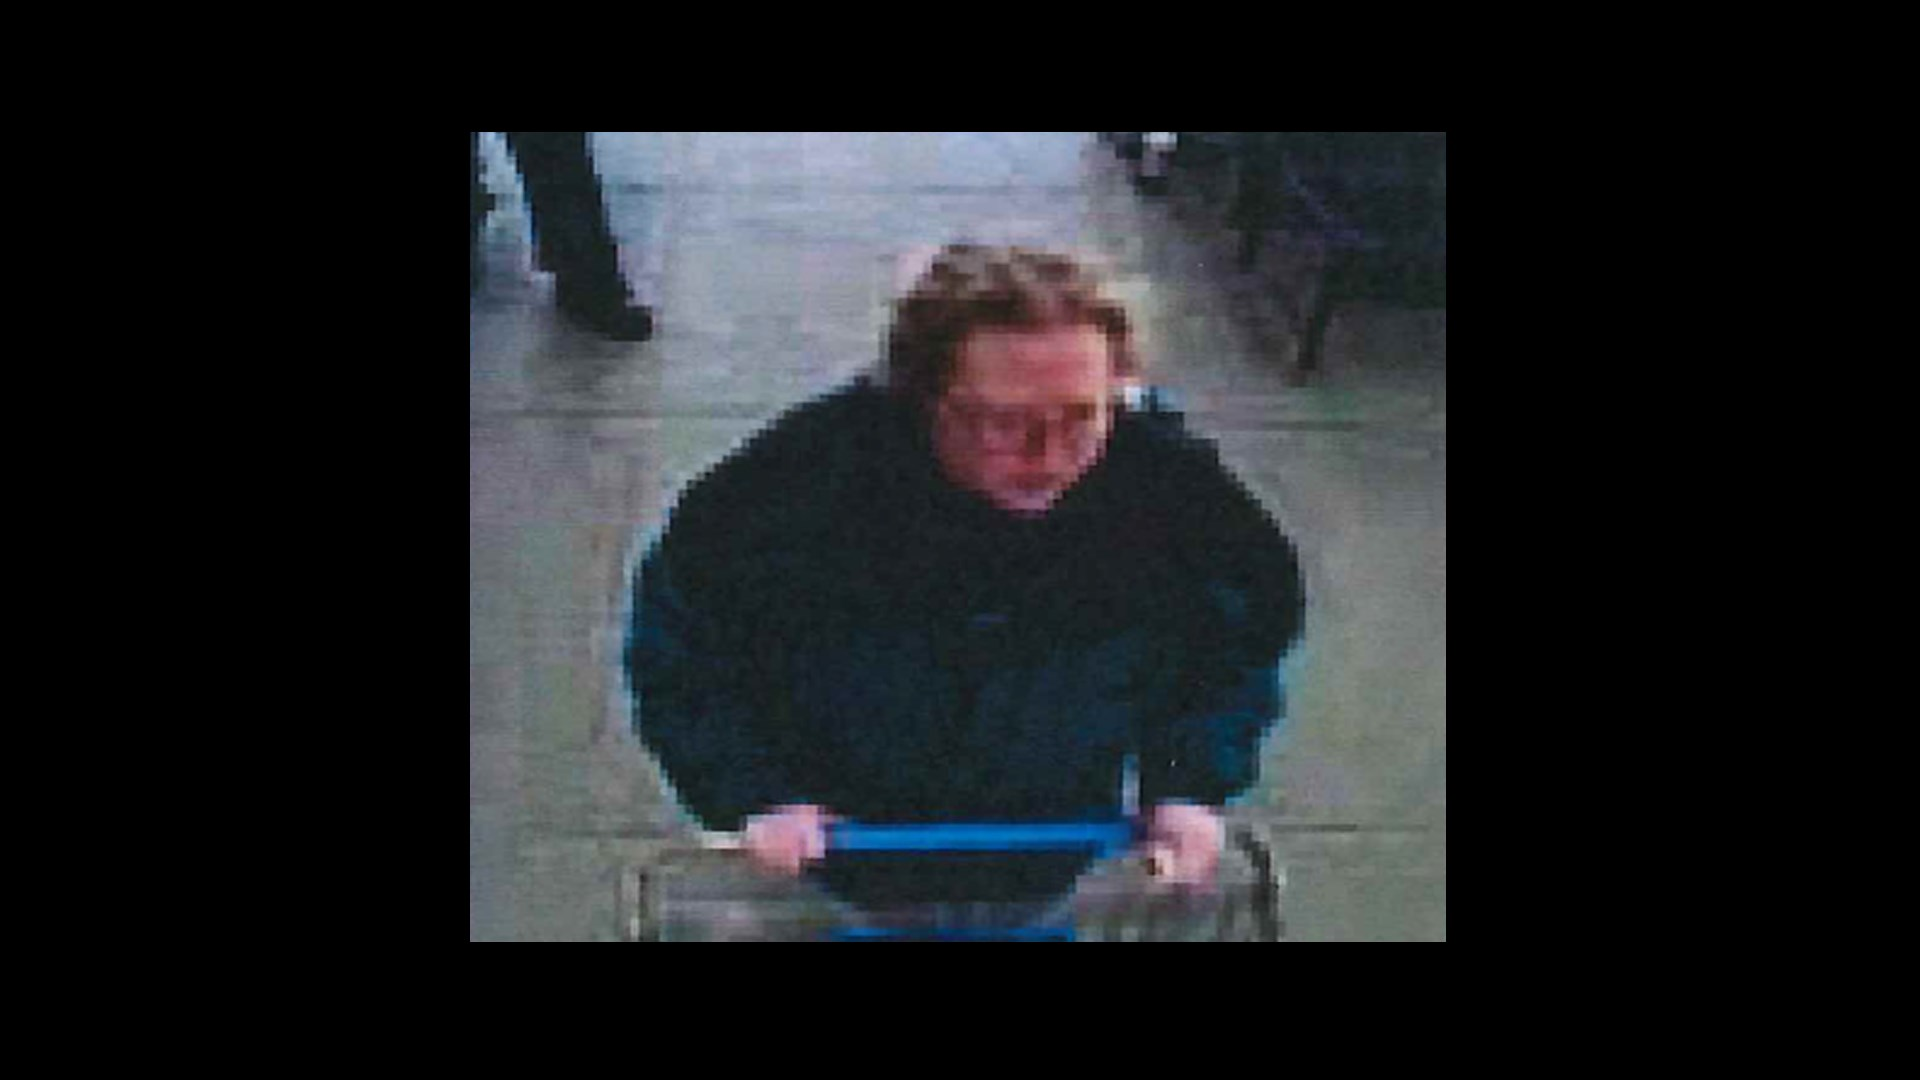 Msp Cadillac Post Looking For Woman Accused Of Stealing Purse